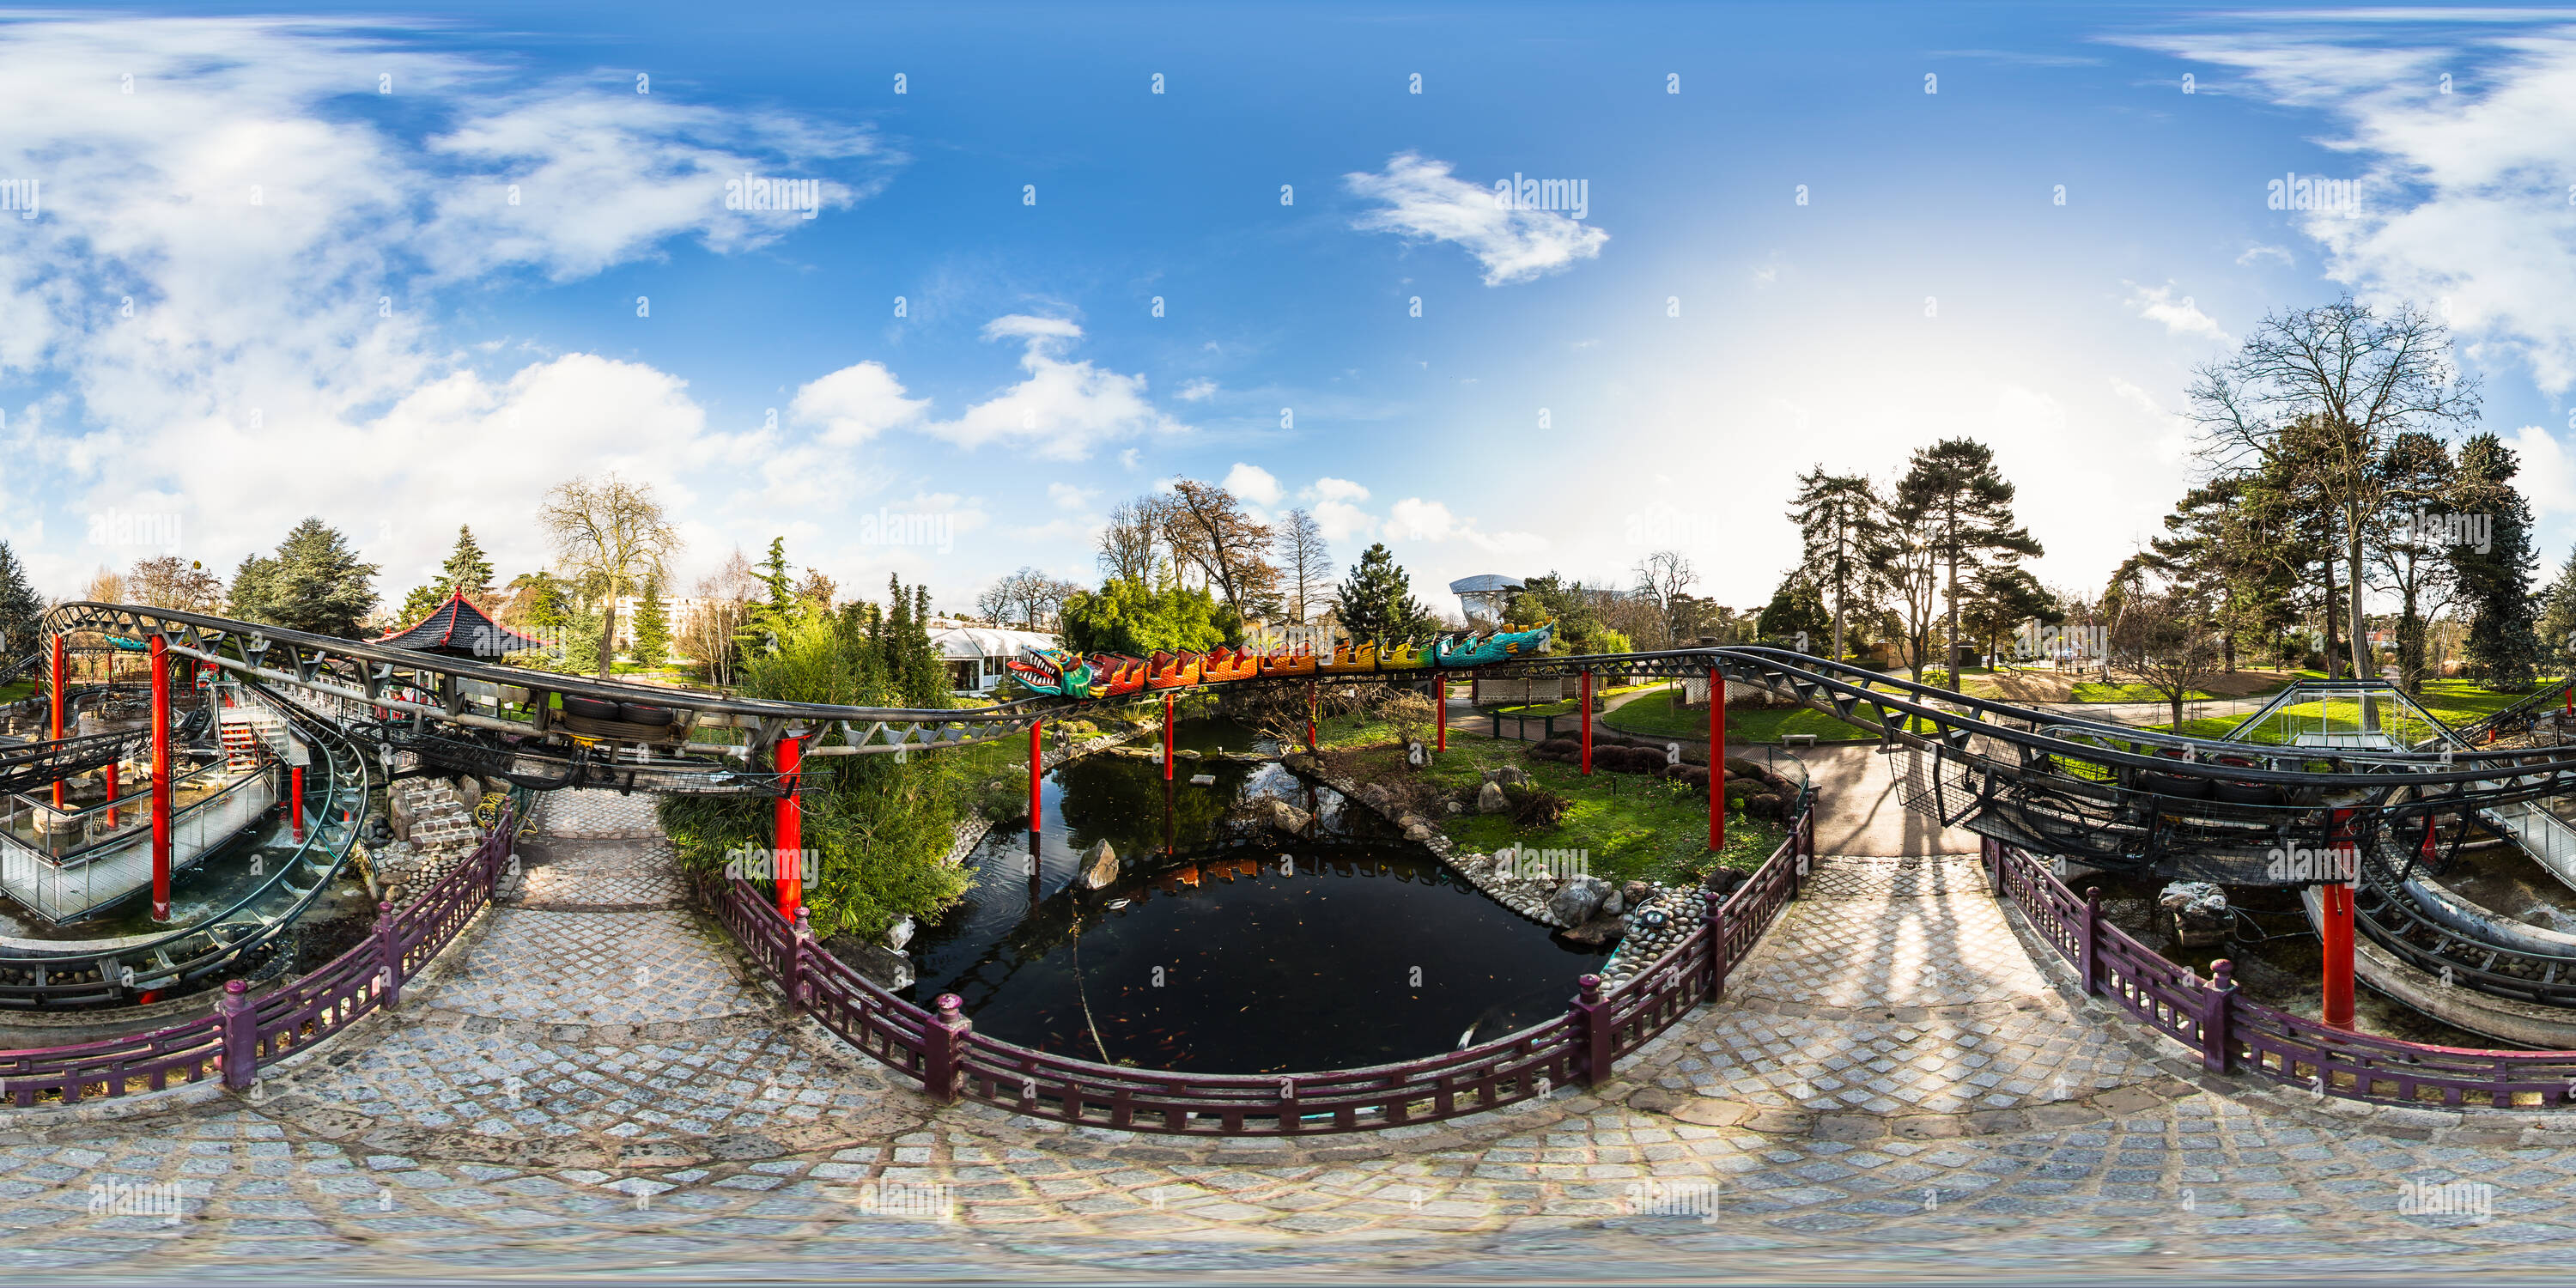 360 View Of Le Dragon At Le Jardin D Acclimatation Bois De